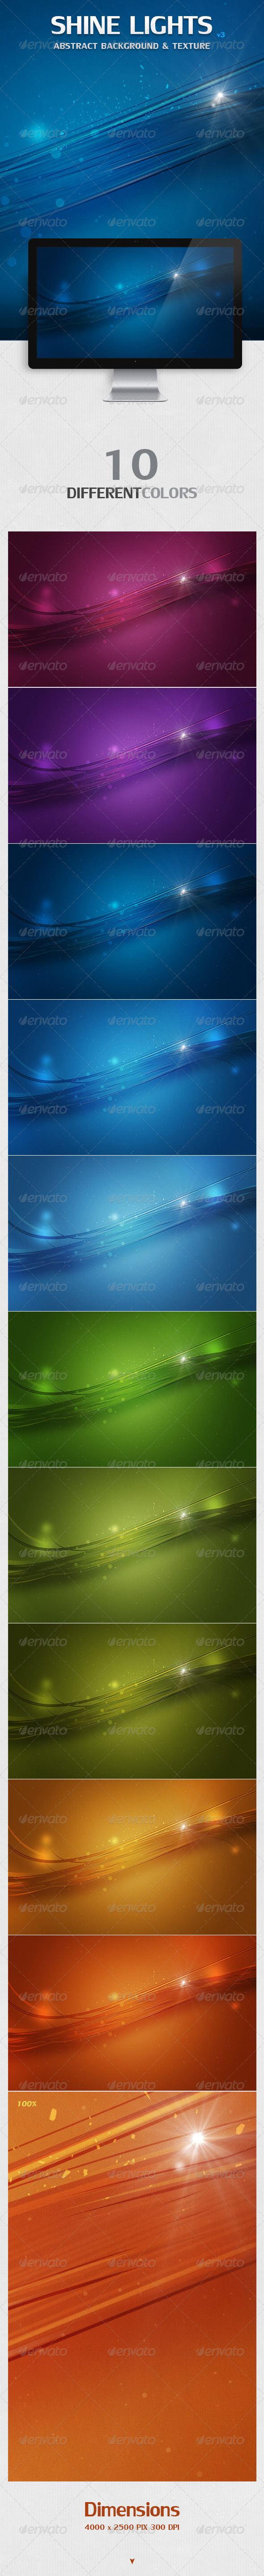 GraphicRiver Shine Lights Abstract Backgrounds & Texture 4354248